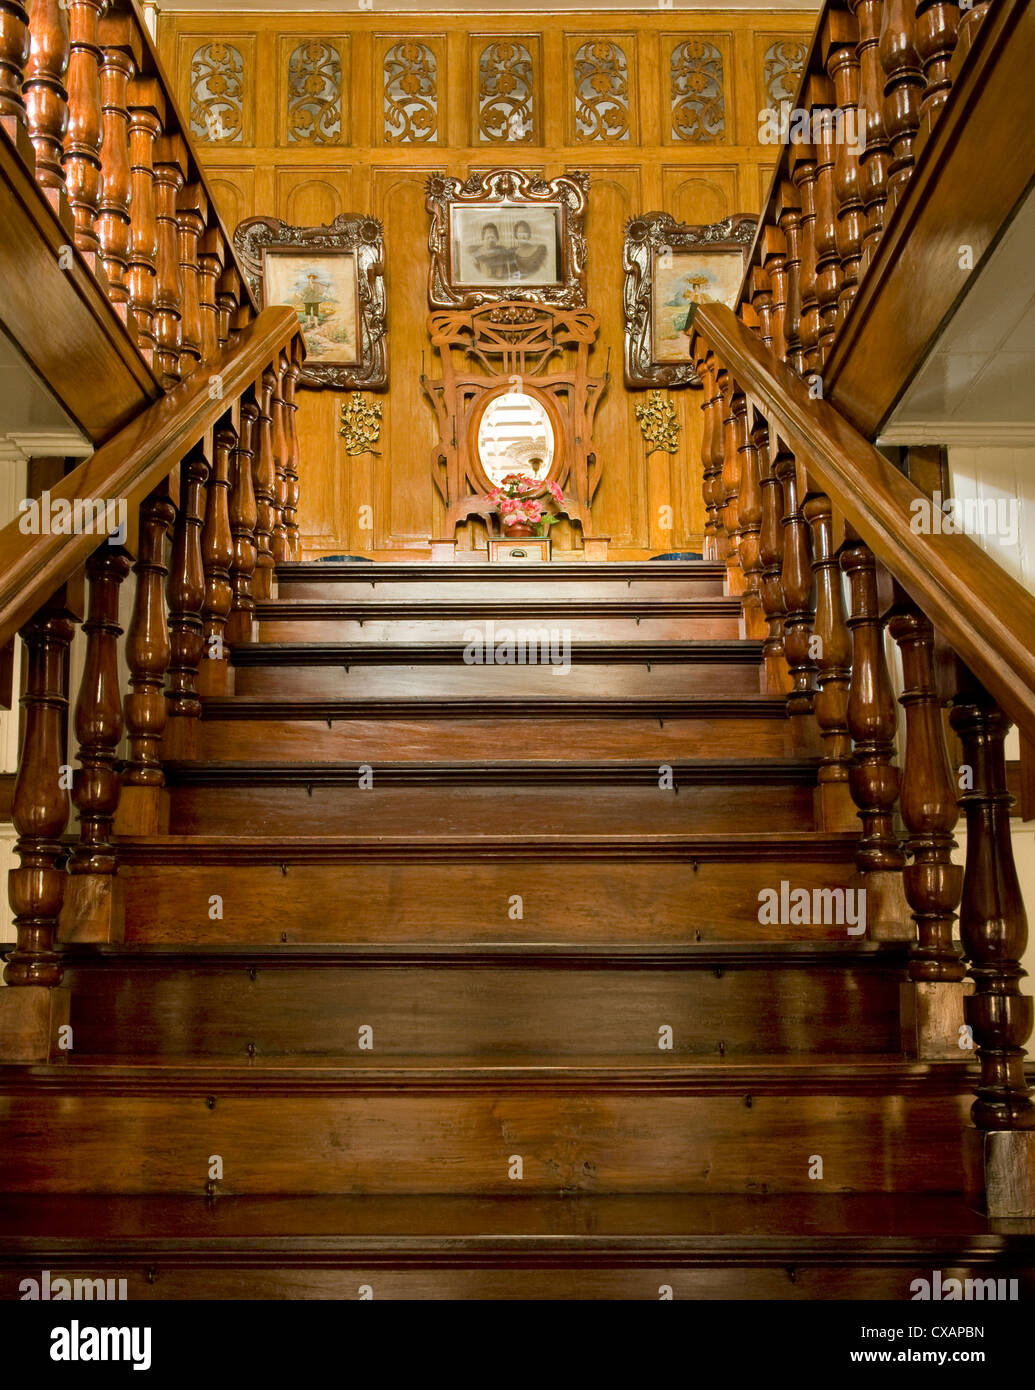 Staircase of Borja residence, an art nouveau Filipino style residence dating from 1920, Malabon, Metro Manila, Philippines - Stock Image